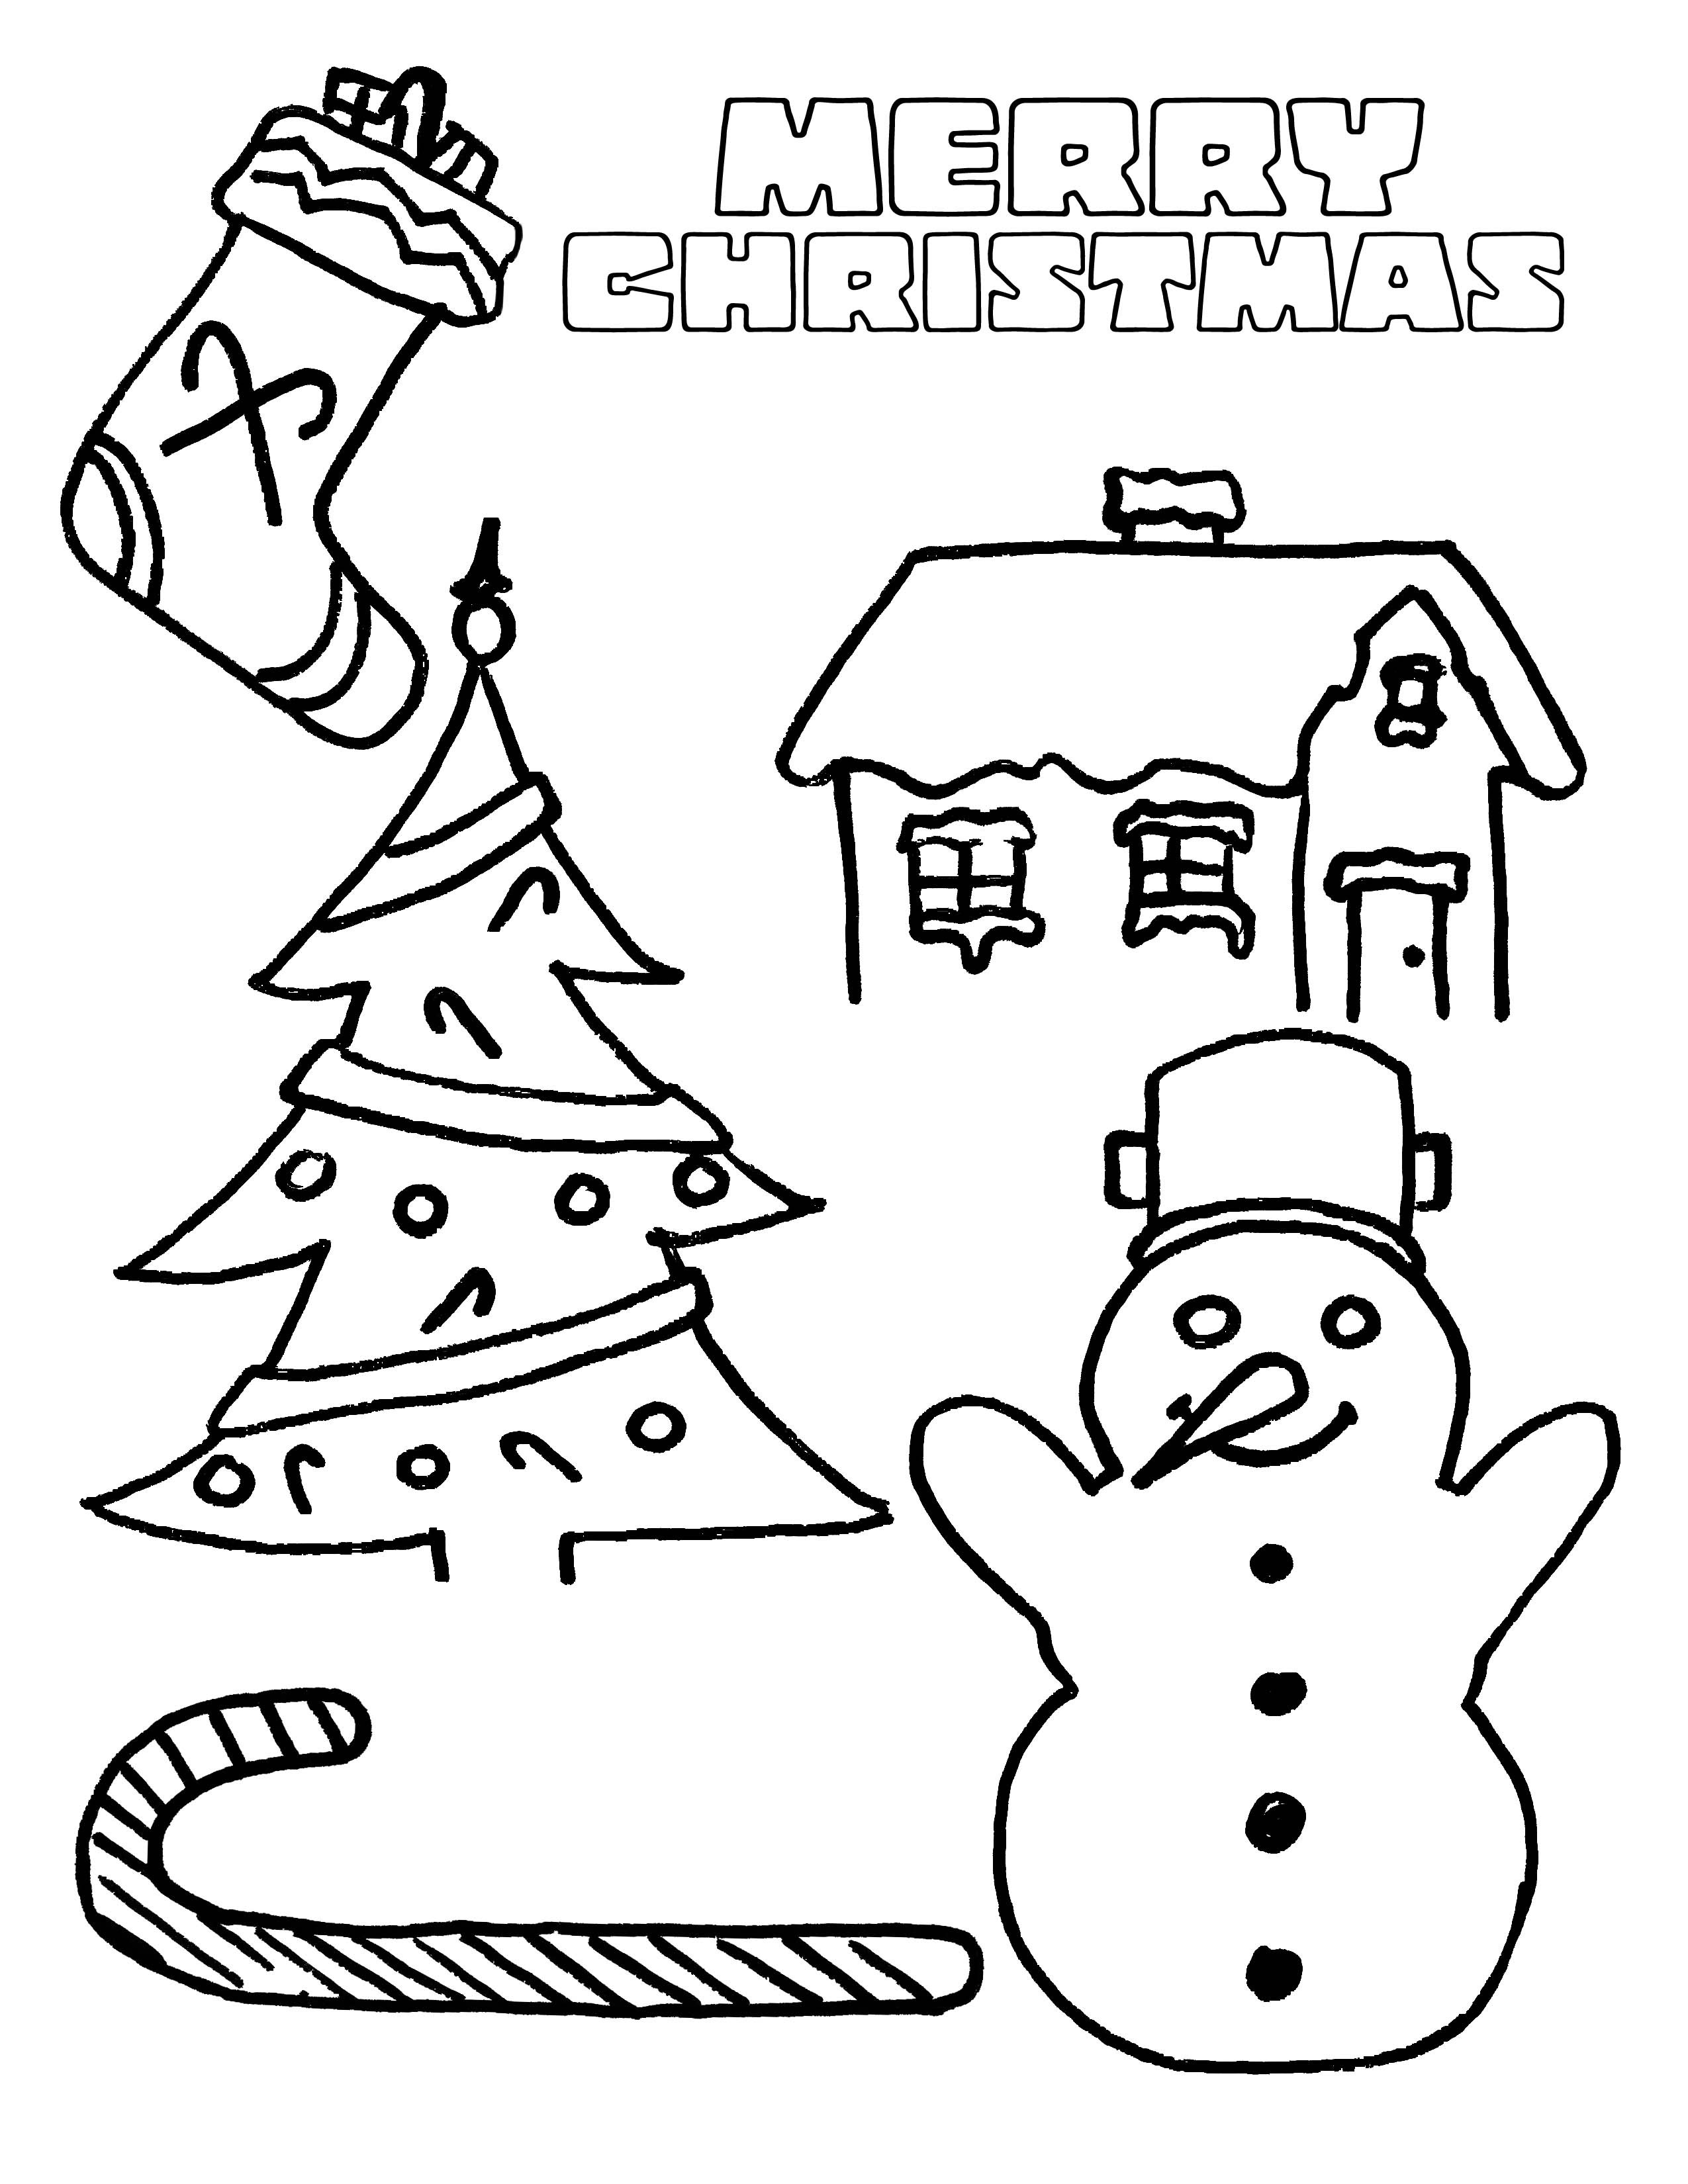 Free Christmas Coloring Pages For Kids  Party Simplicity free Christmas coloring page for kids